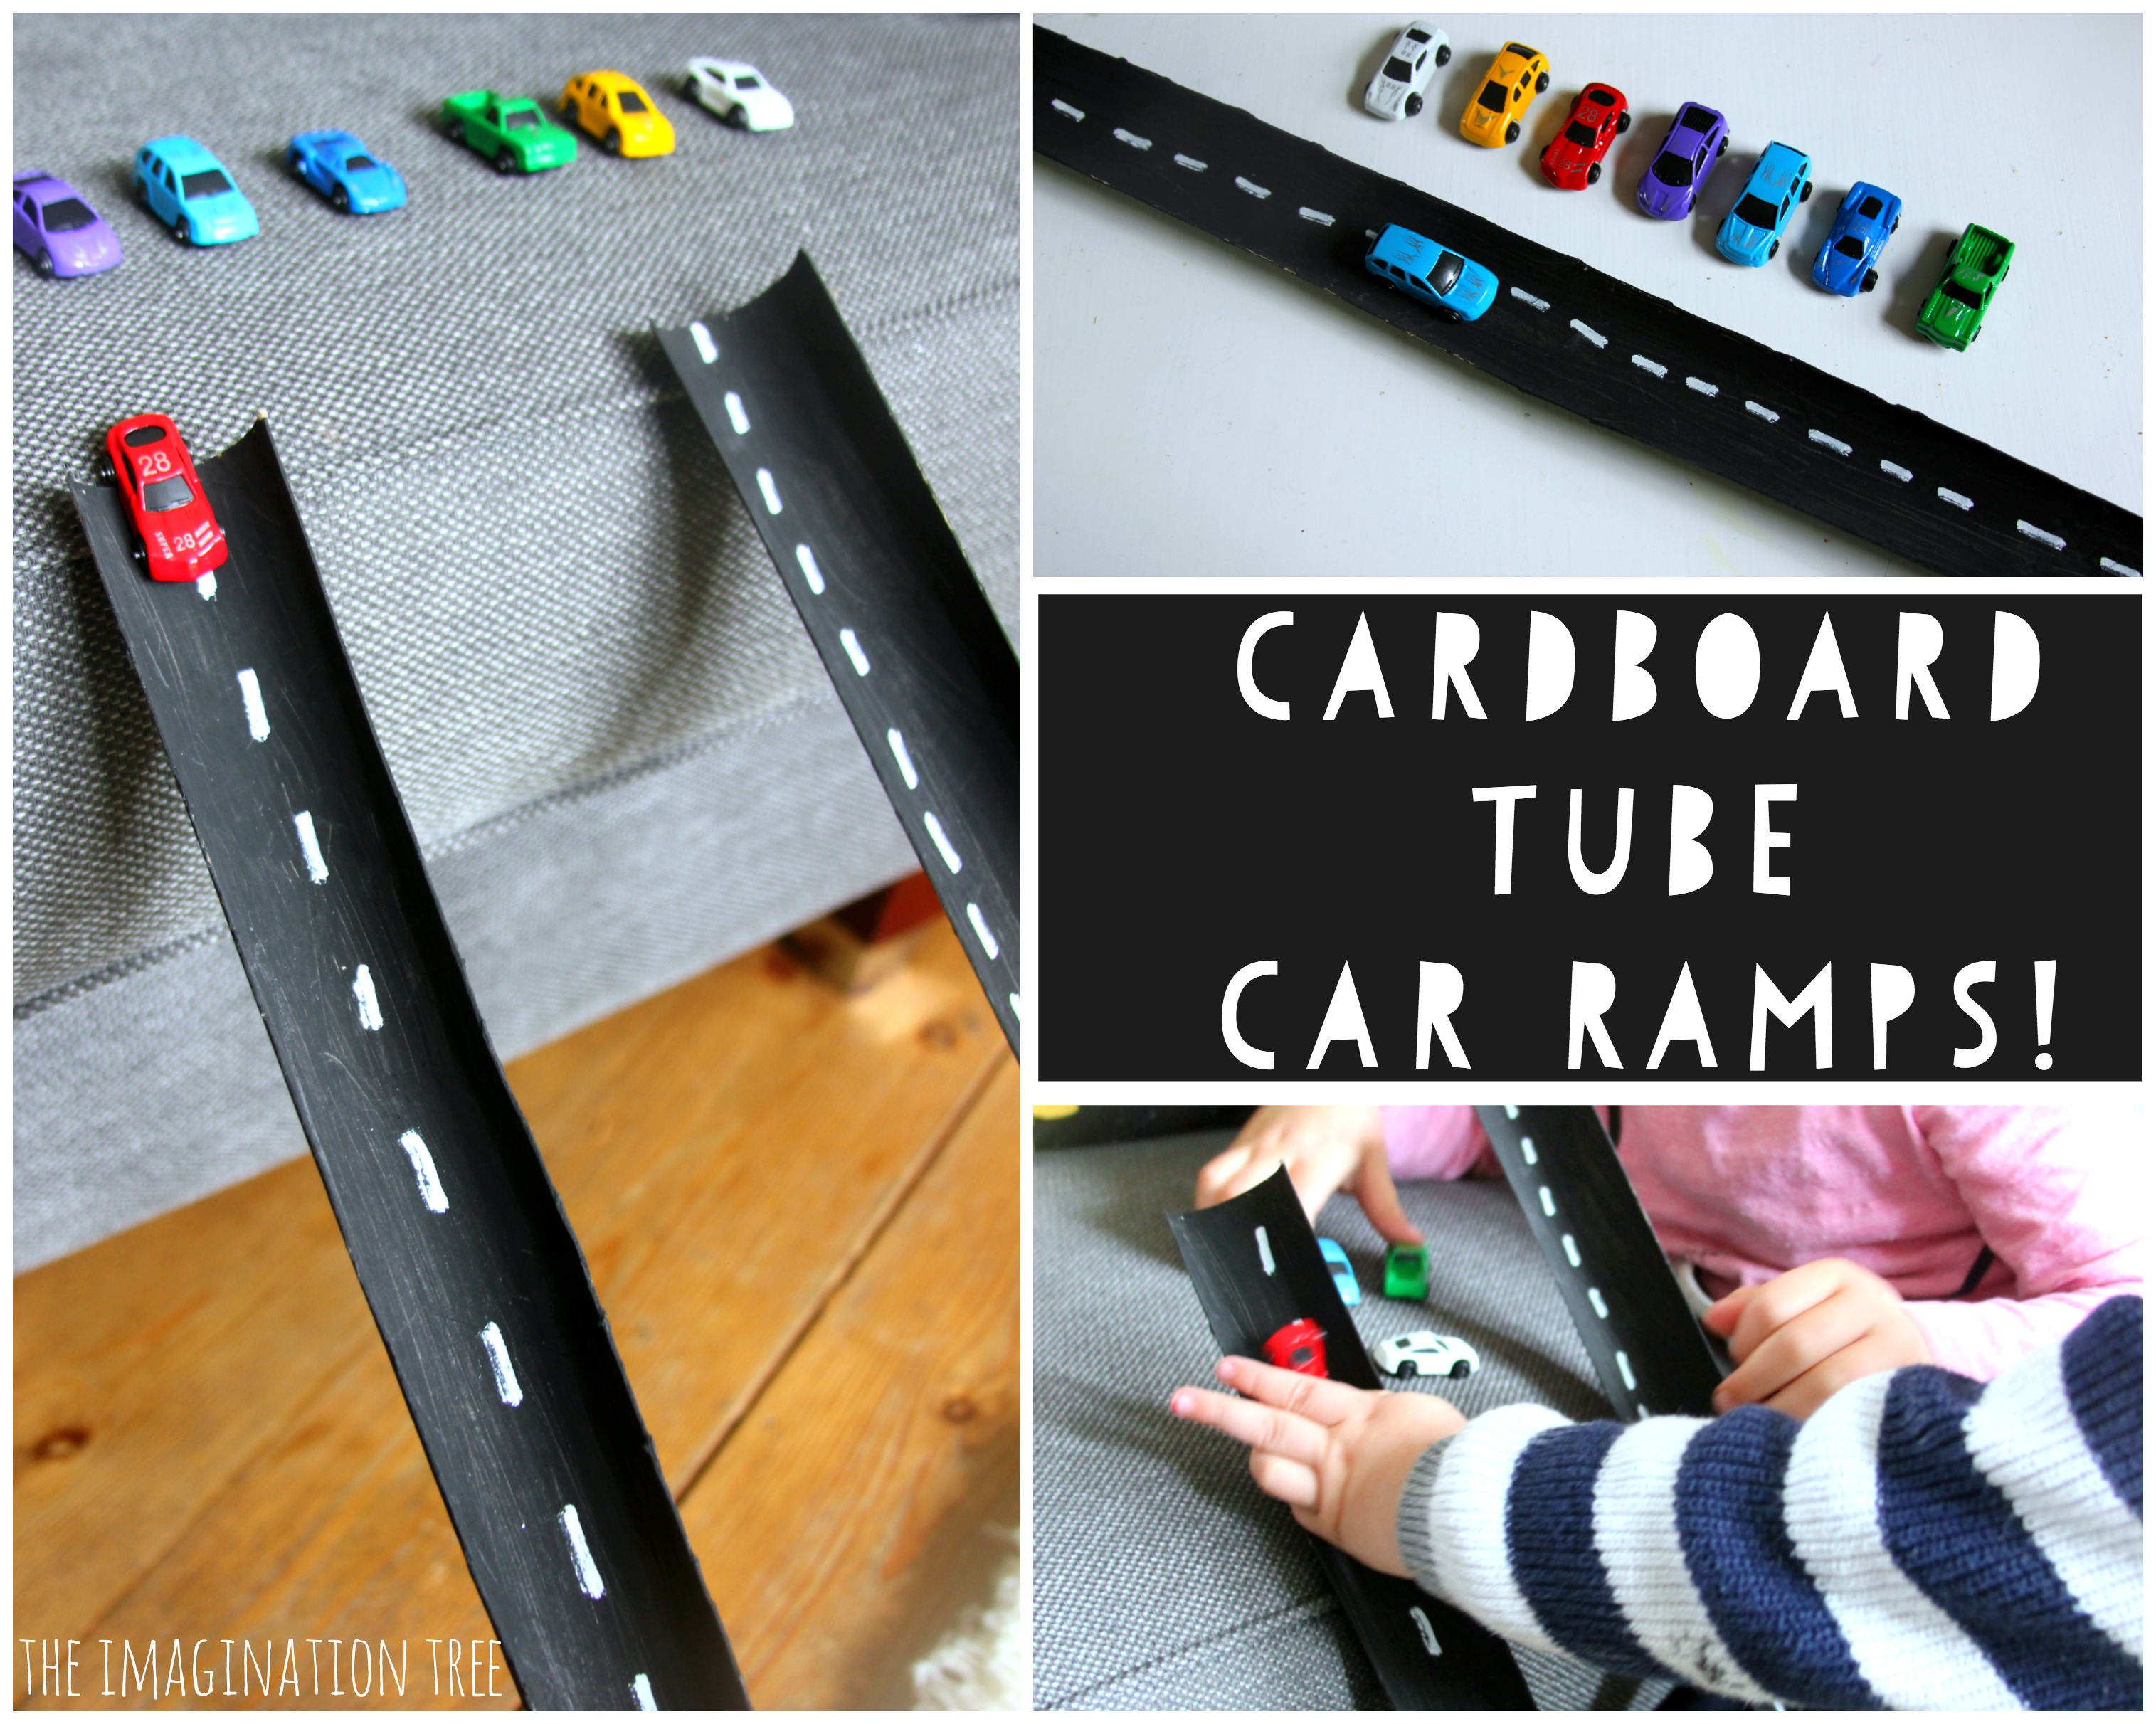 Cardboard Tube Car Ramps The Imagination Tree